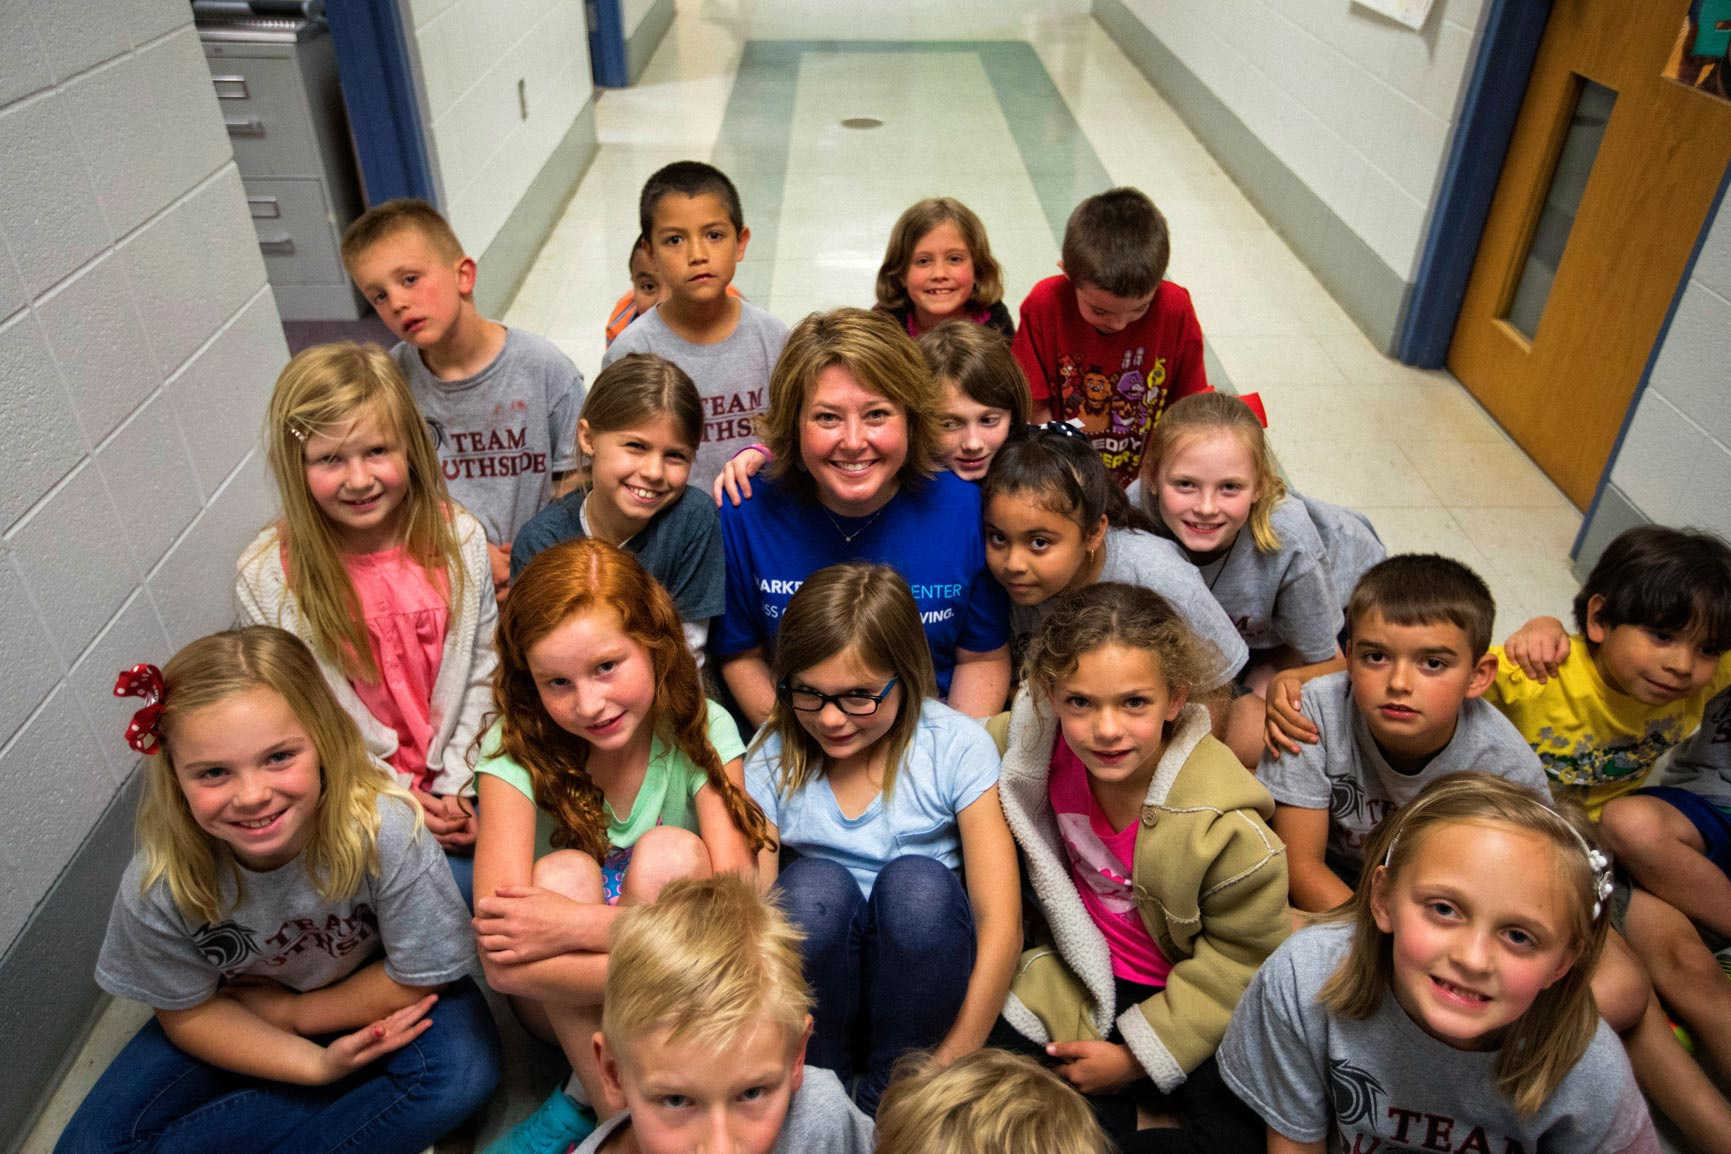 Erika Carter sitting in a school hallway surrounded by her students